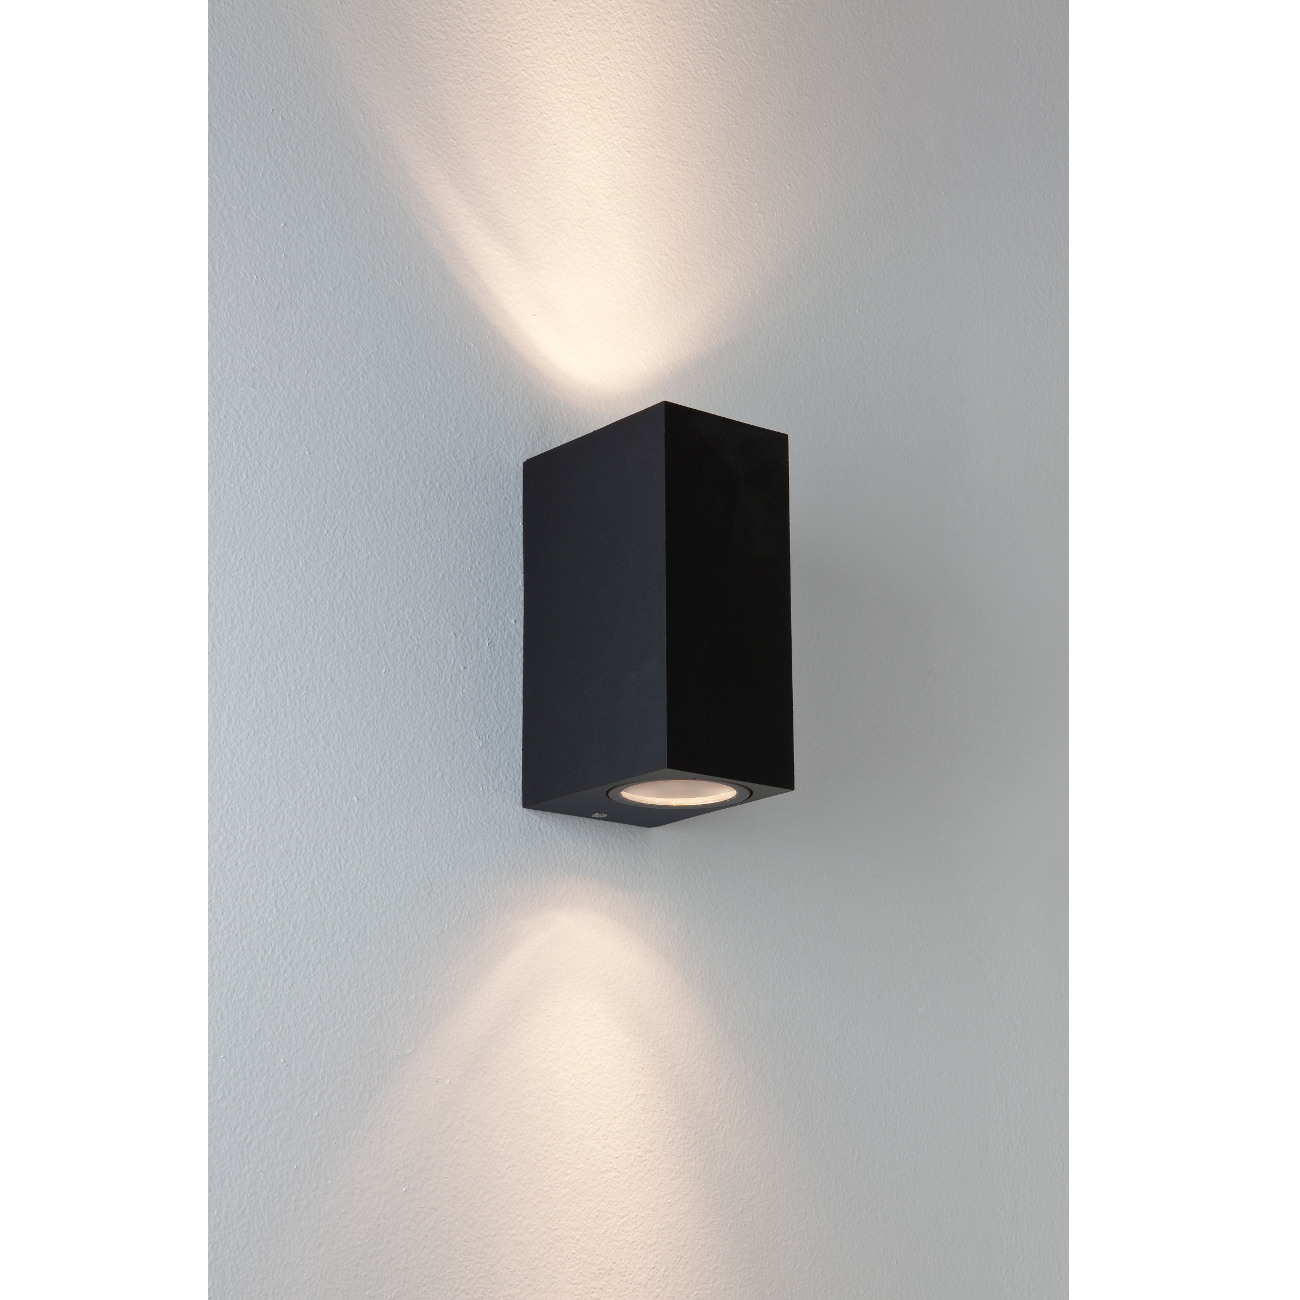 geradlinig designte wandleuchte up downlight f r au en chios 150. Black Bedroom Furniture Sets. Home Design Ideas